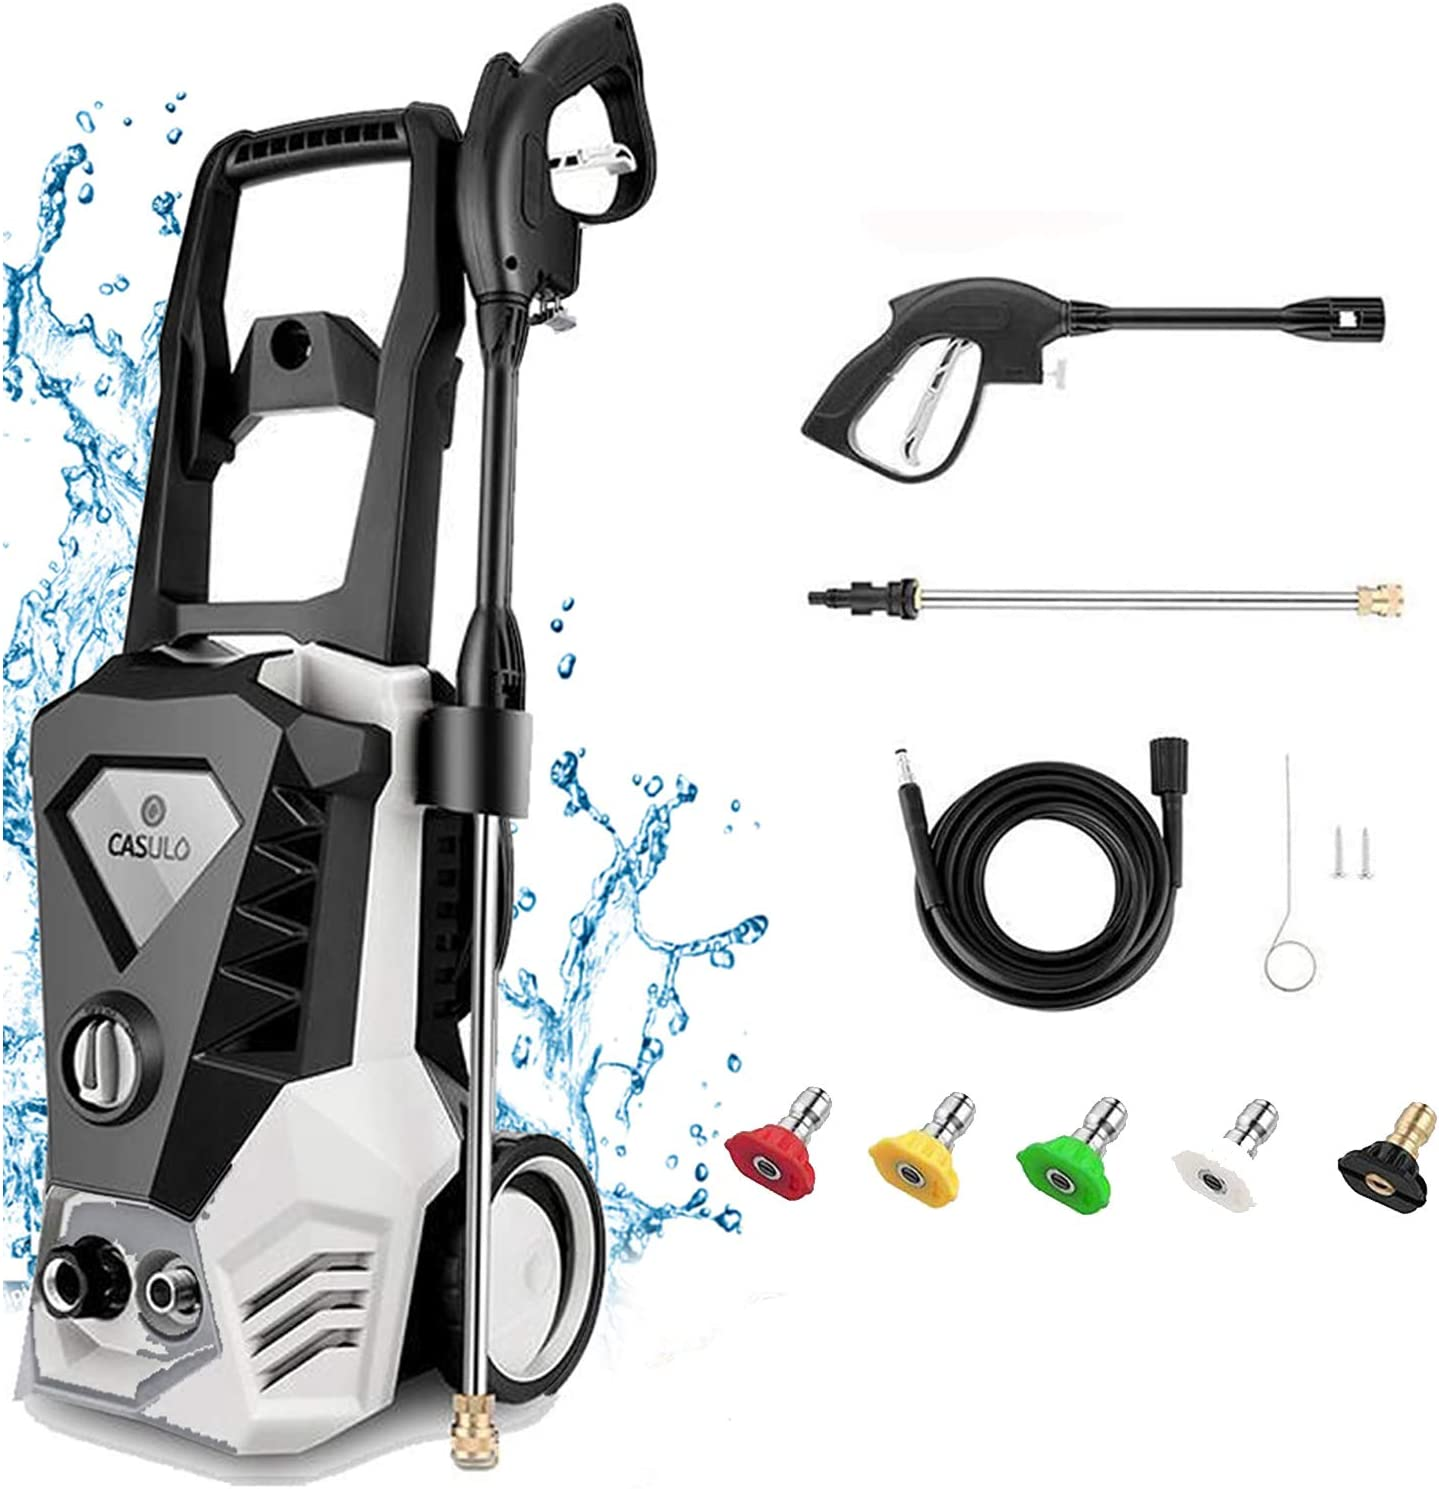 Pressure Washer Electric 3500 PSI Max 2.6GPM 1800W High Pressure Washer Car White Power Washer with Spray Gun, 5 Adjustable Nozzles, 32ft Cable, Detergent Tank, for Garden/Home/Driveways [US Stock]